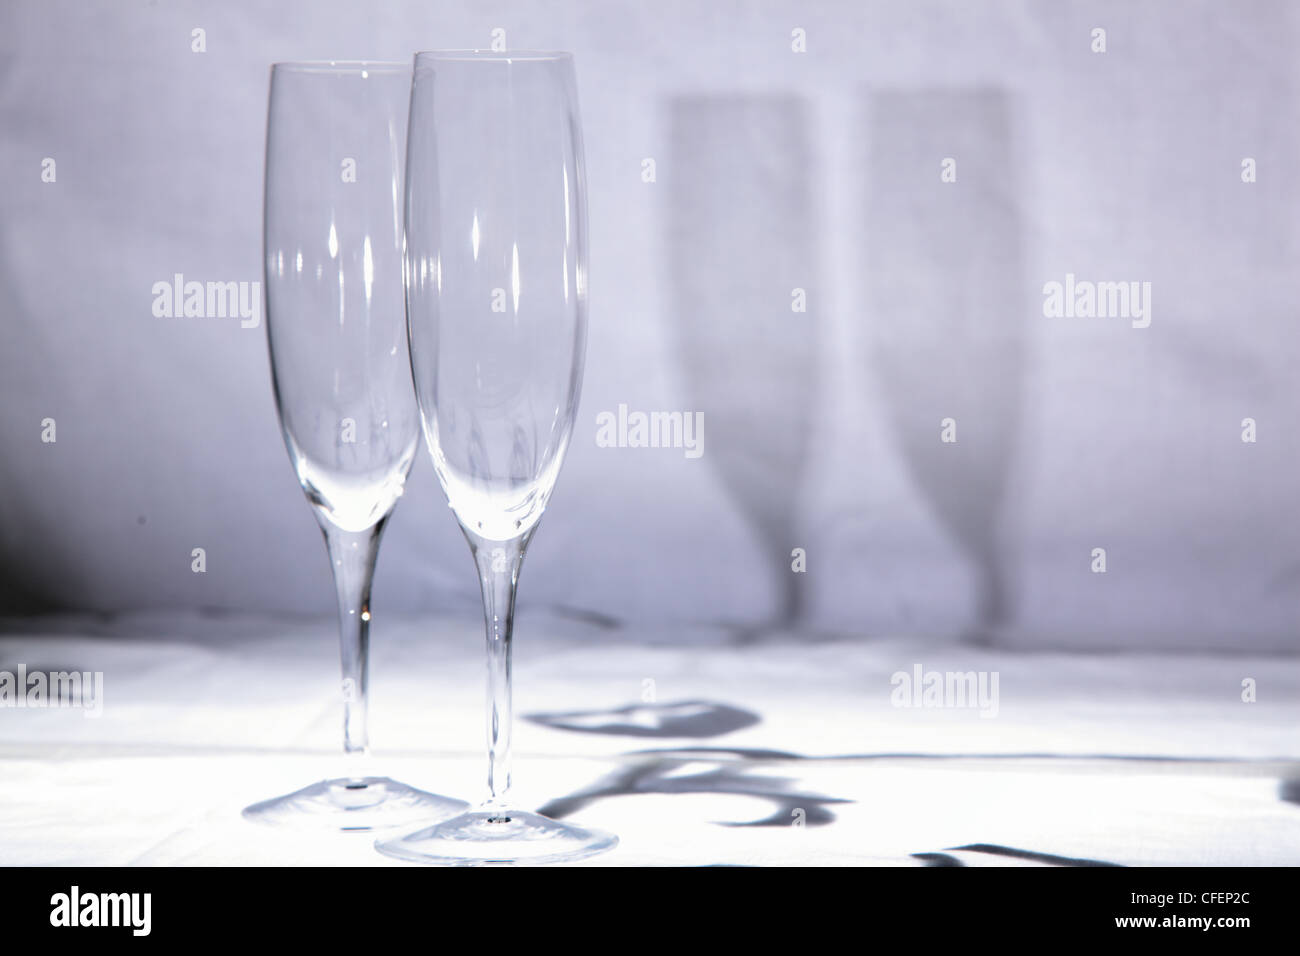 pair of crystal champagne flute glasses on white background with shadow - Stock Image